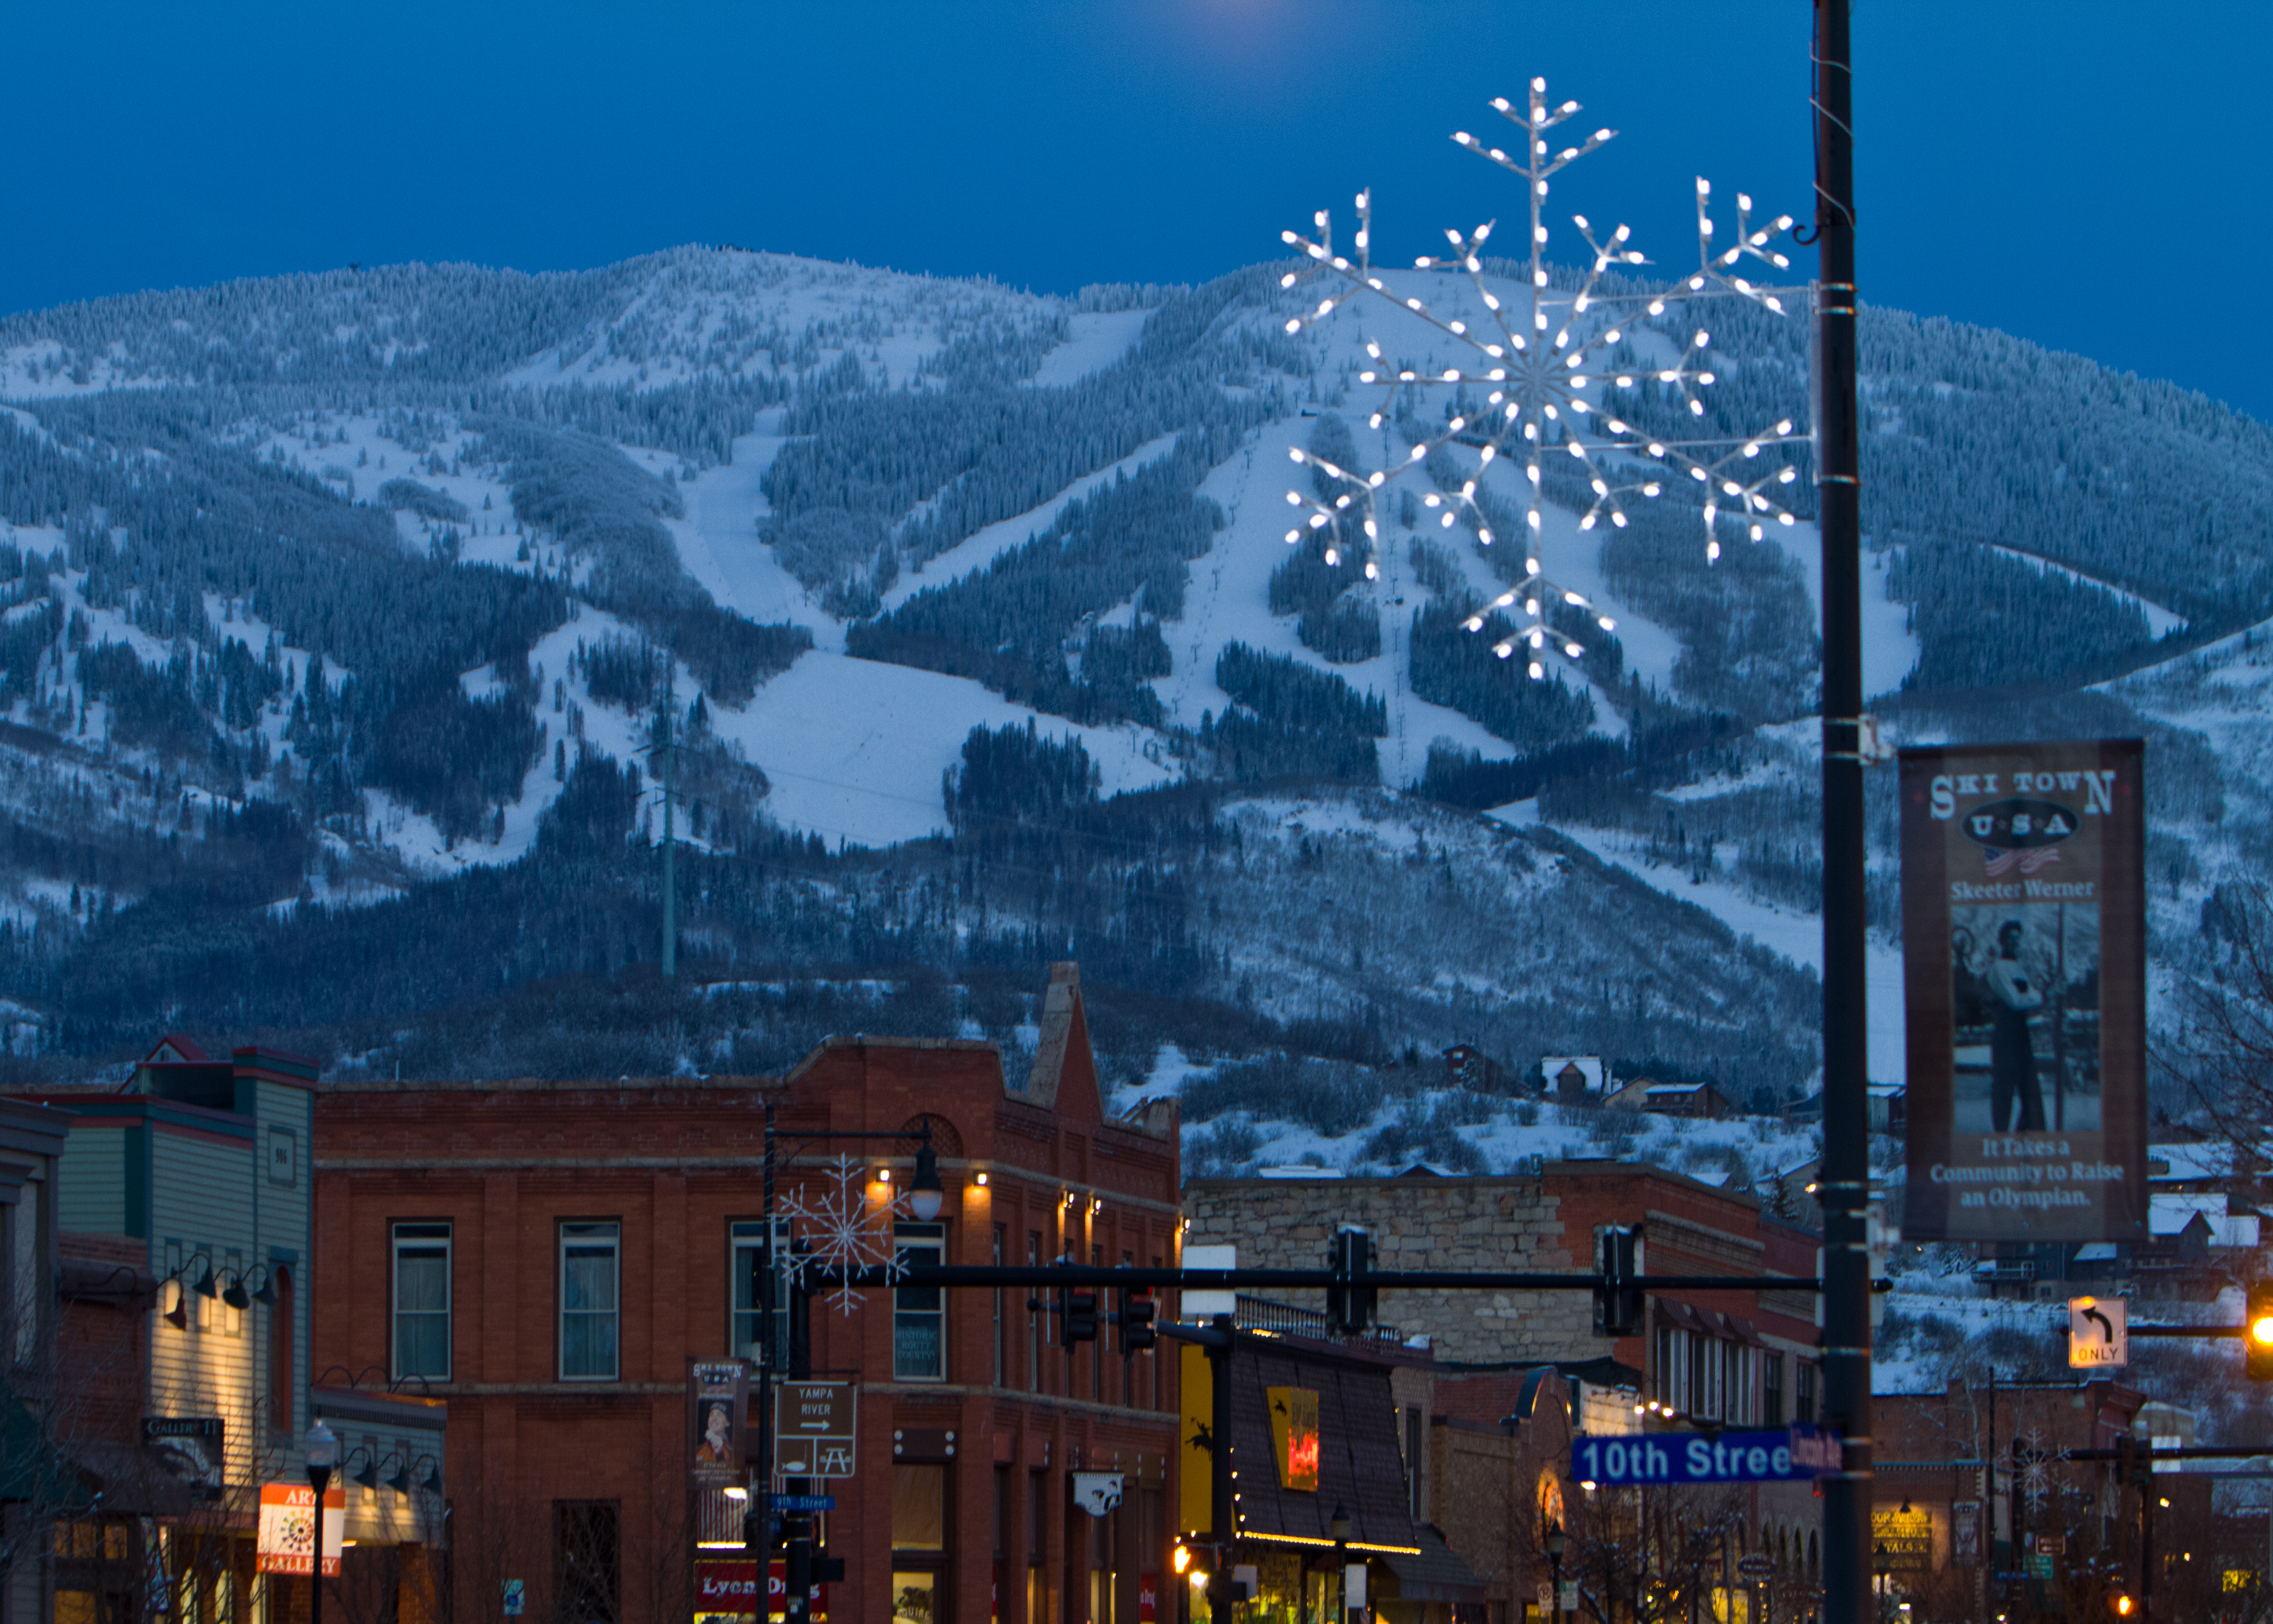 Downtown Steamboat